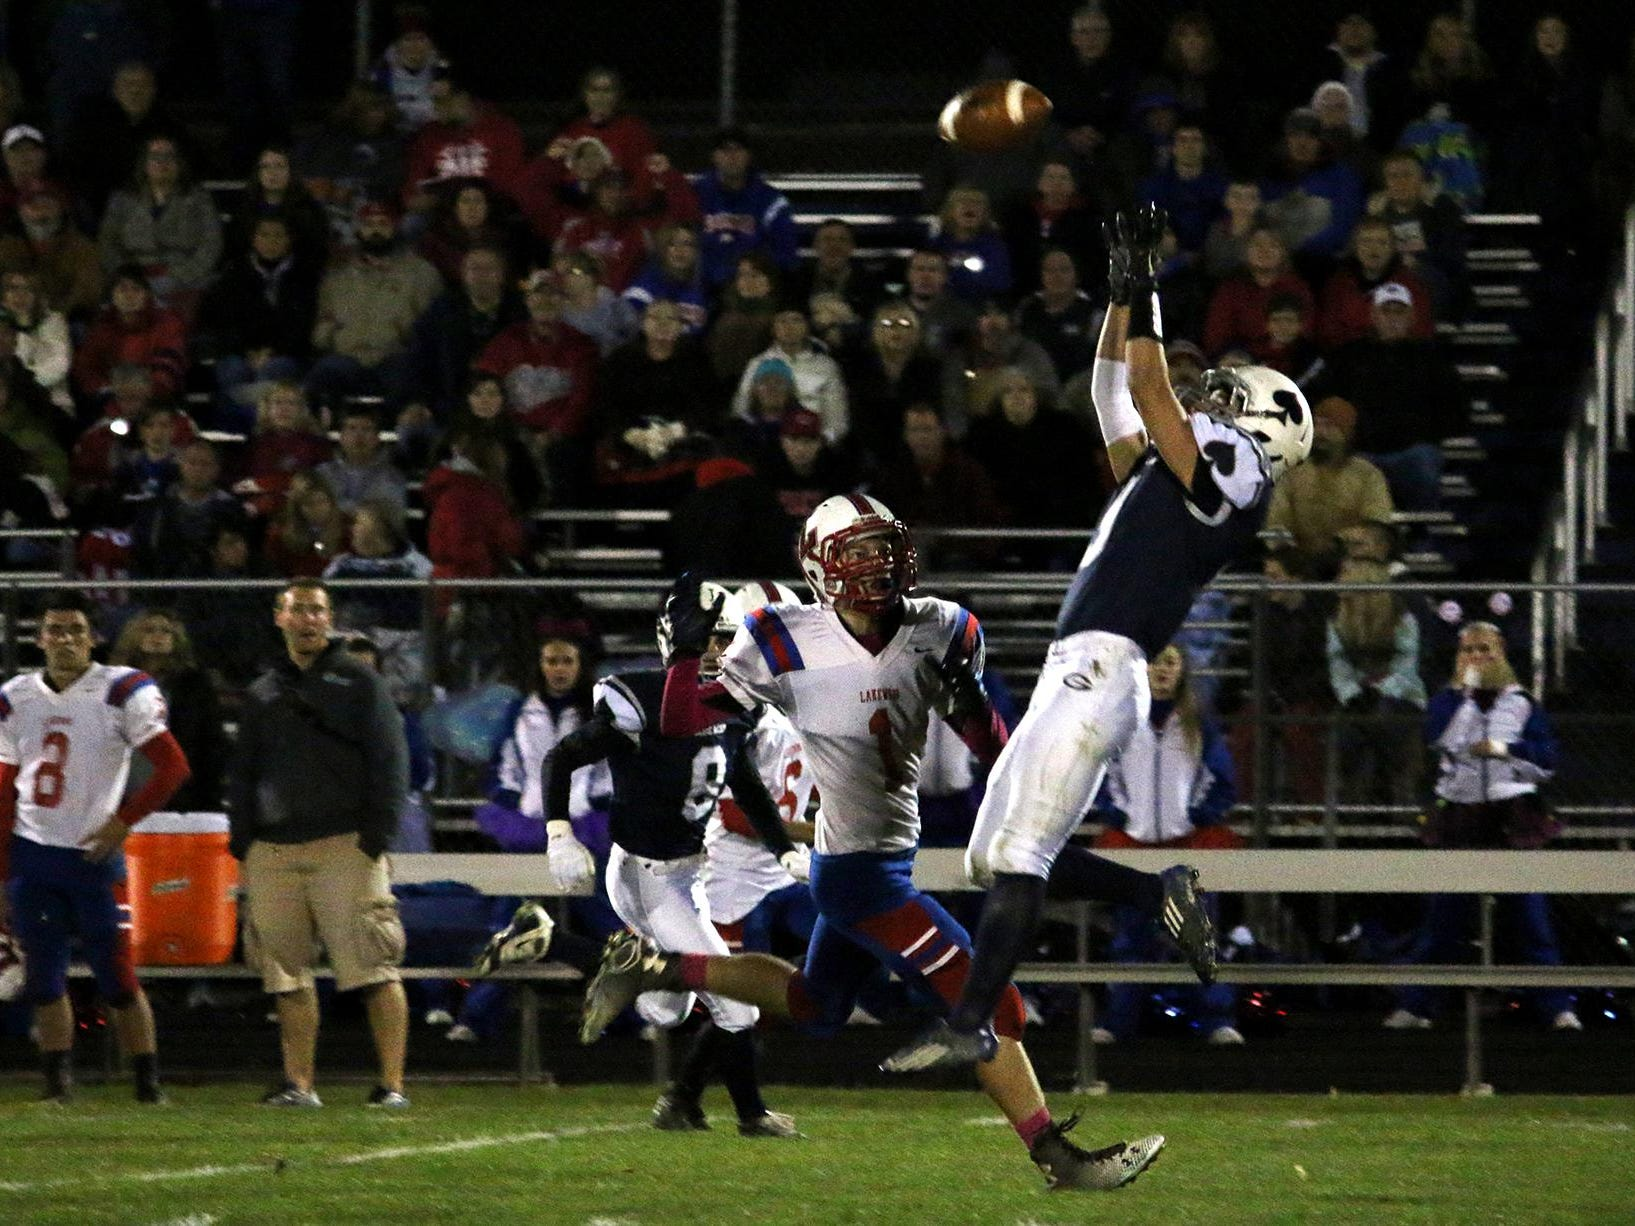 GranvilleÕs Hunter Brown leaps up for the ball. The Blue Aces defeated the Lancers 63-7 on Friday Oct. 30, 2015.